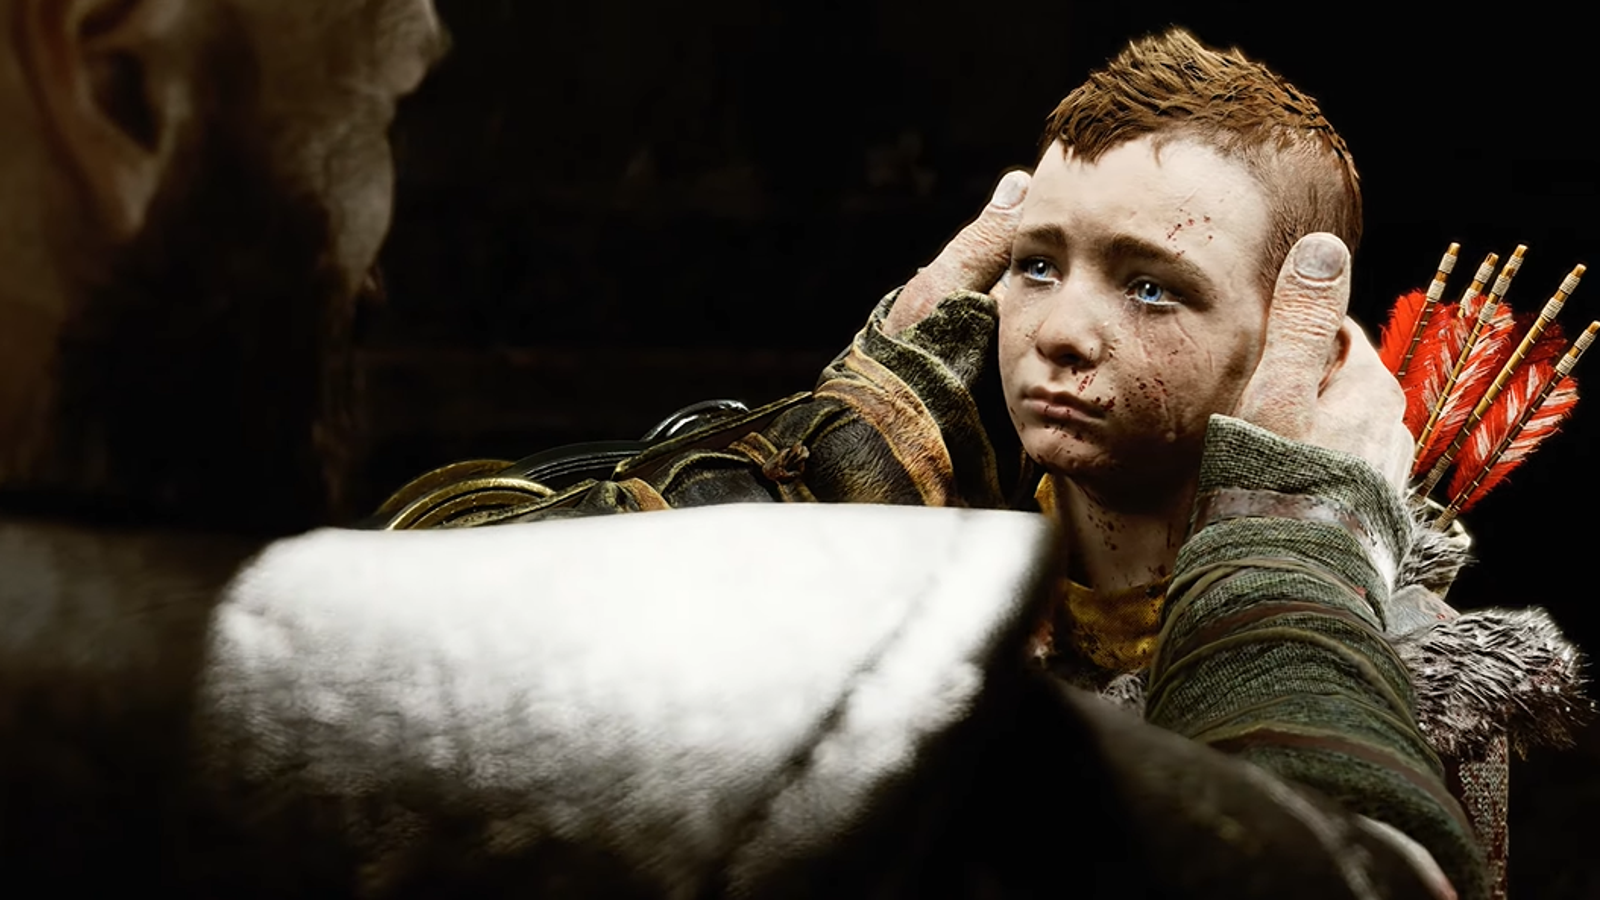 The Parental Struggles In 2018's God Of War Echoed Those Of The People Making It - Kotaku